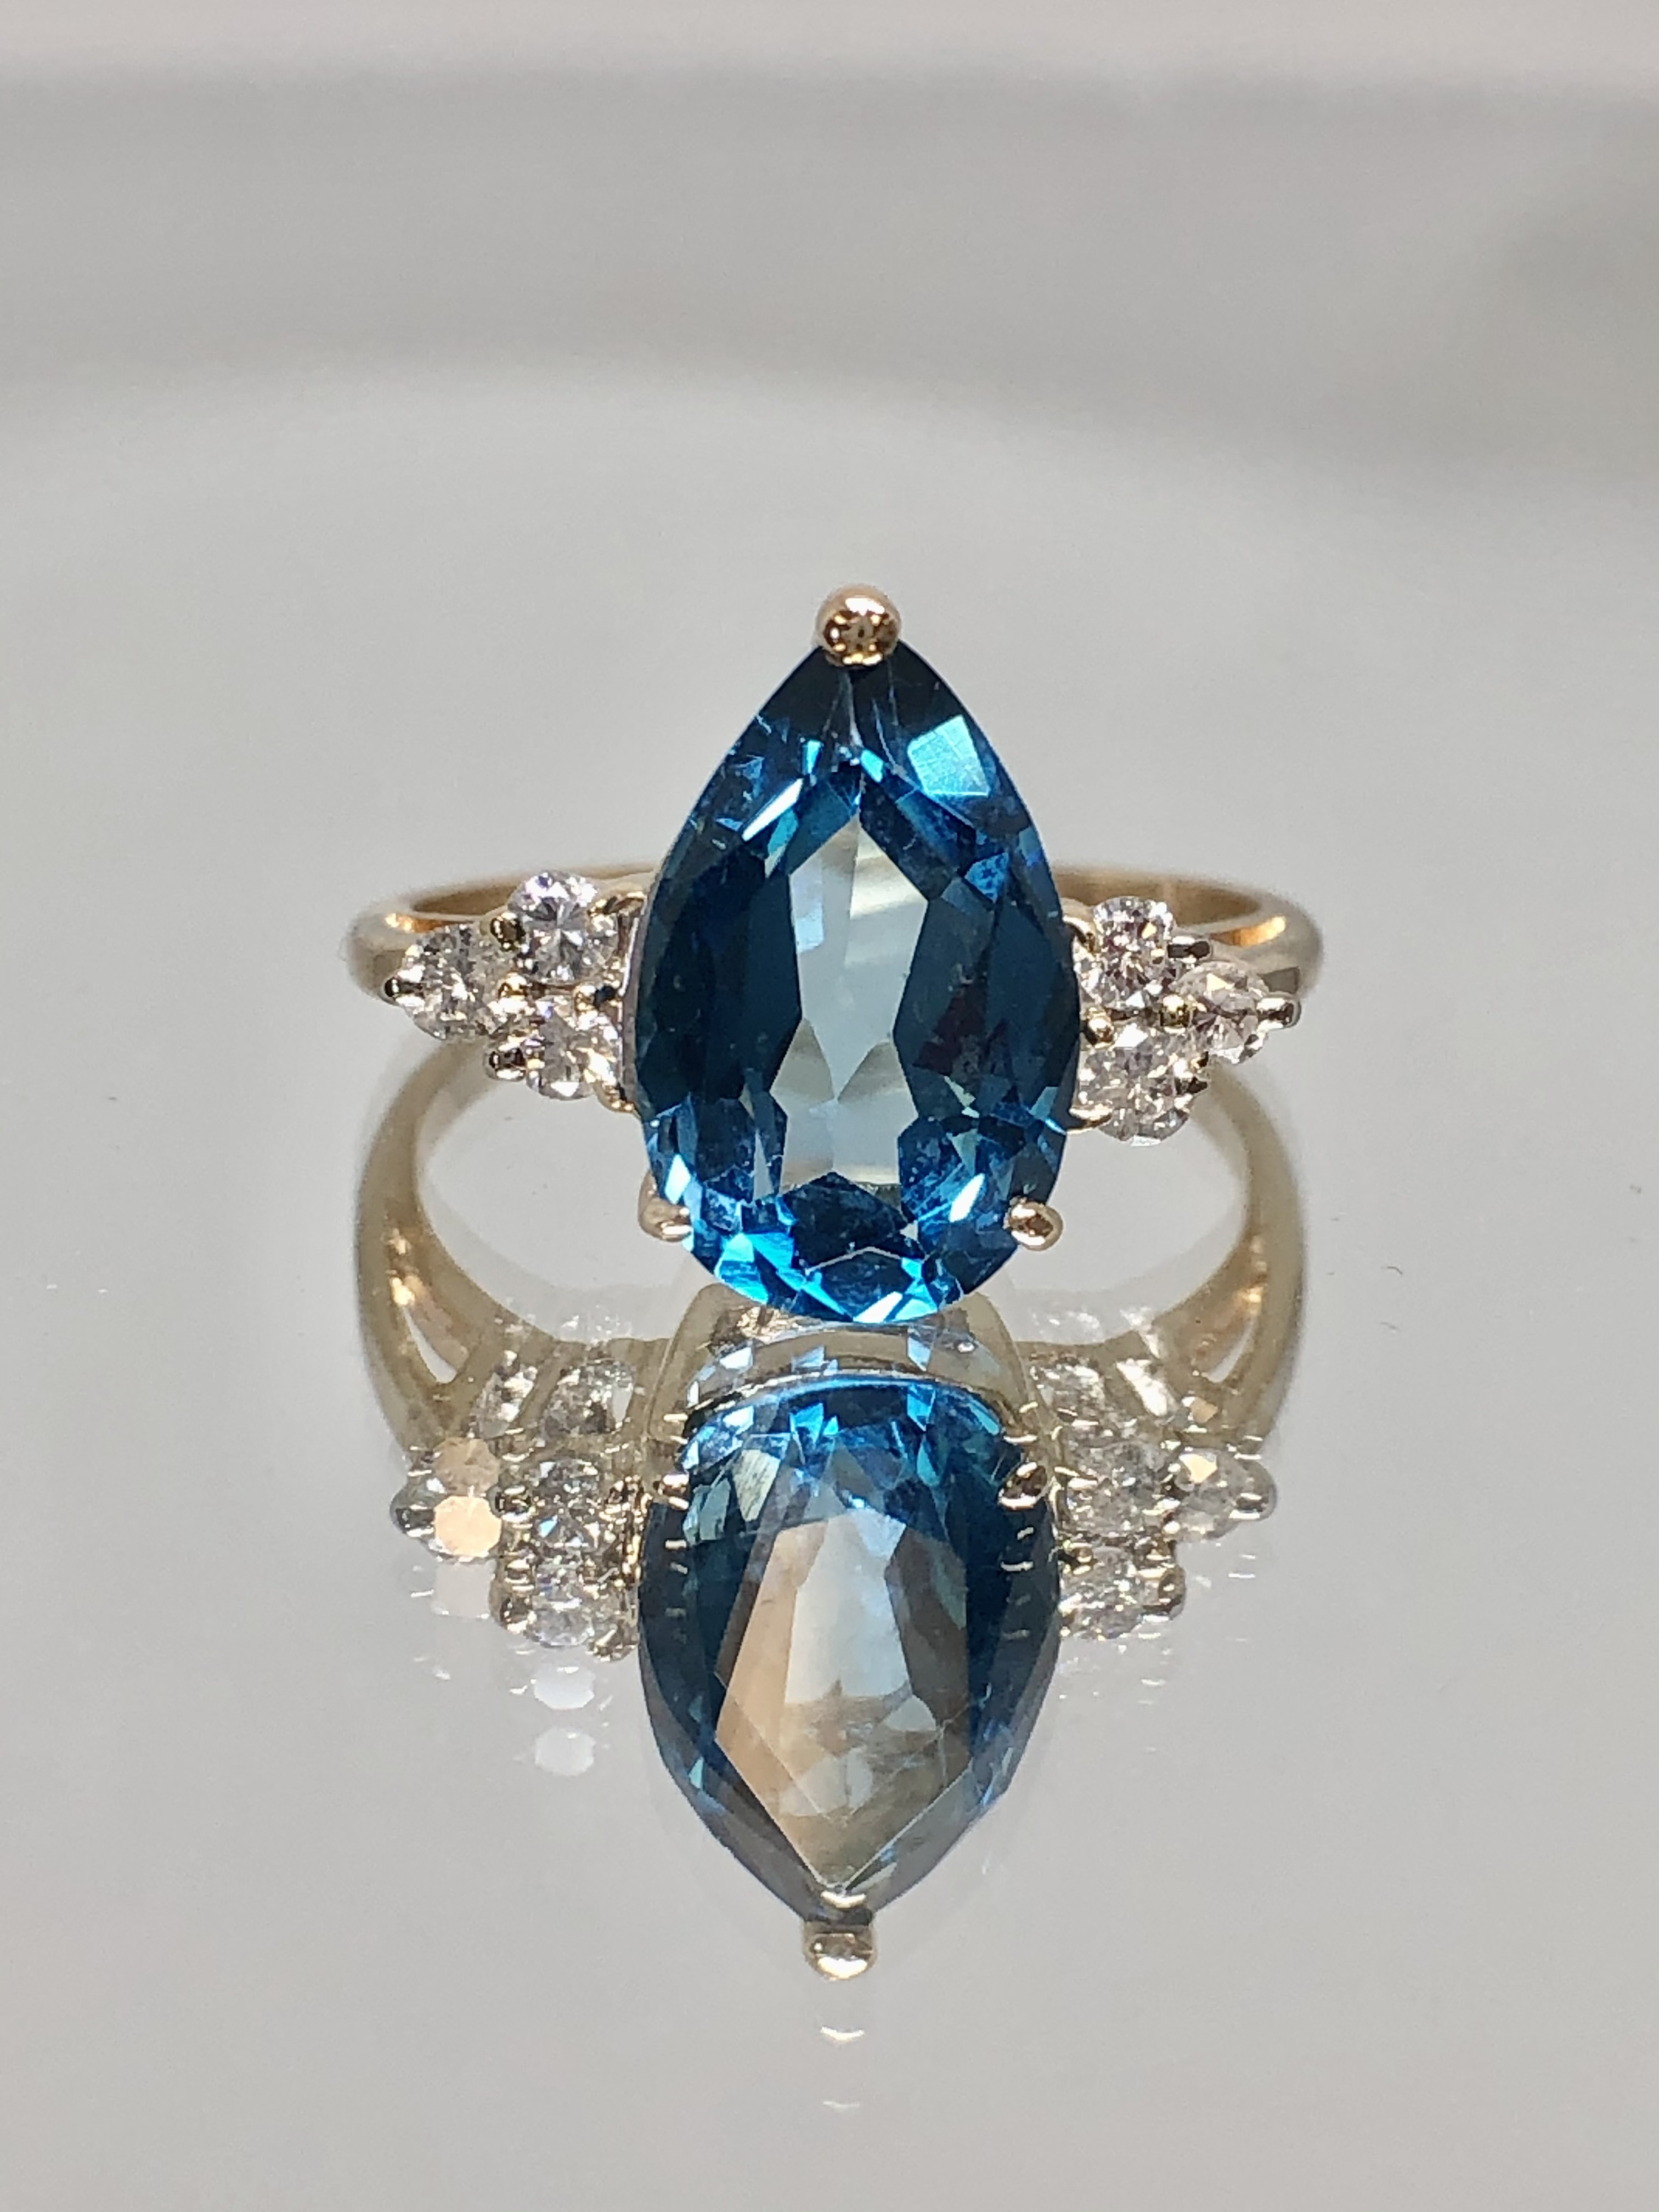 14K YELLOW GOLD DIAMOND AND PEAR SHAPED BLUE TOPAZ RING